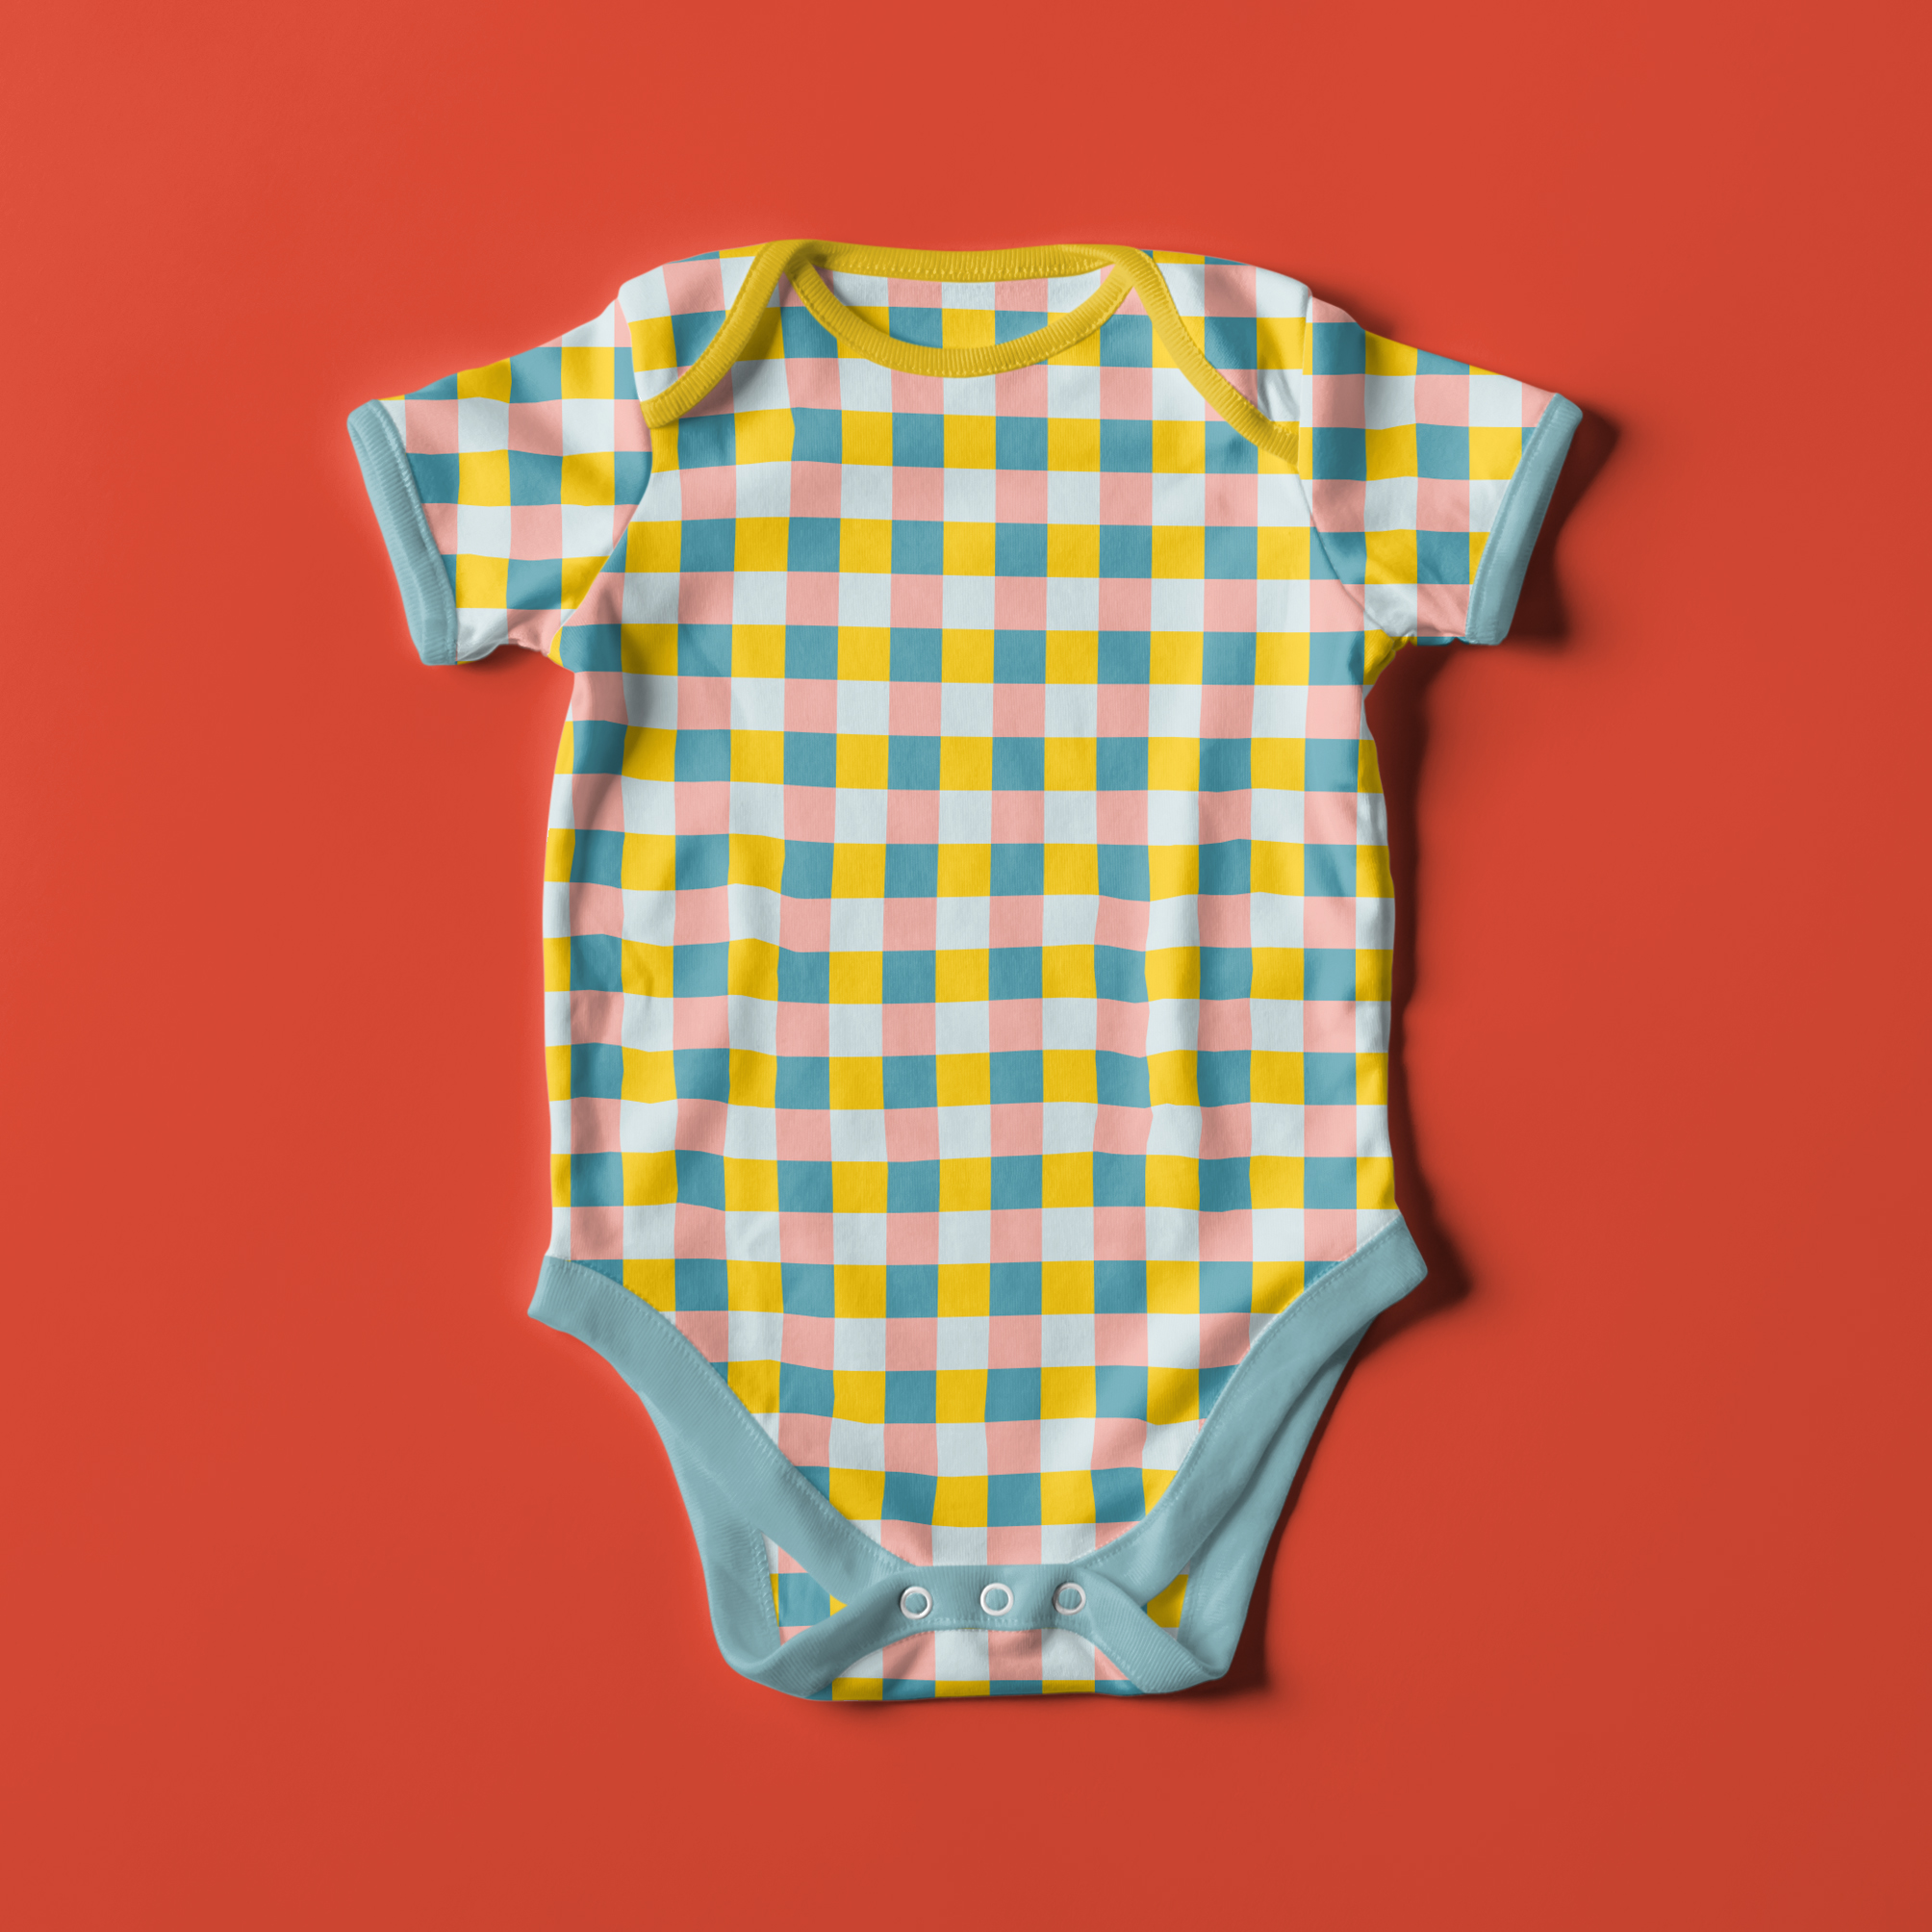 01_Baby Bodysuit Mock-up_front_top view.jpg